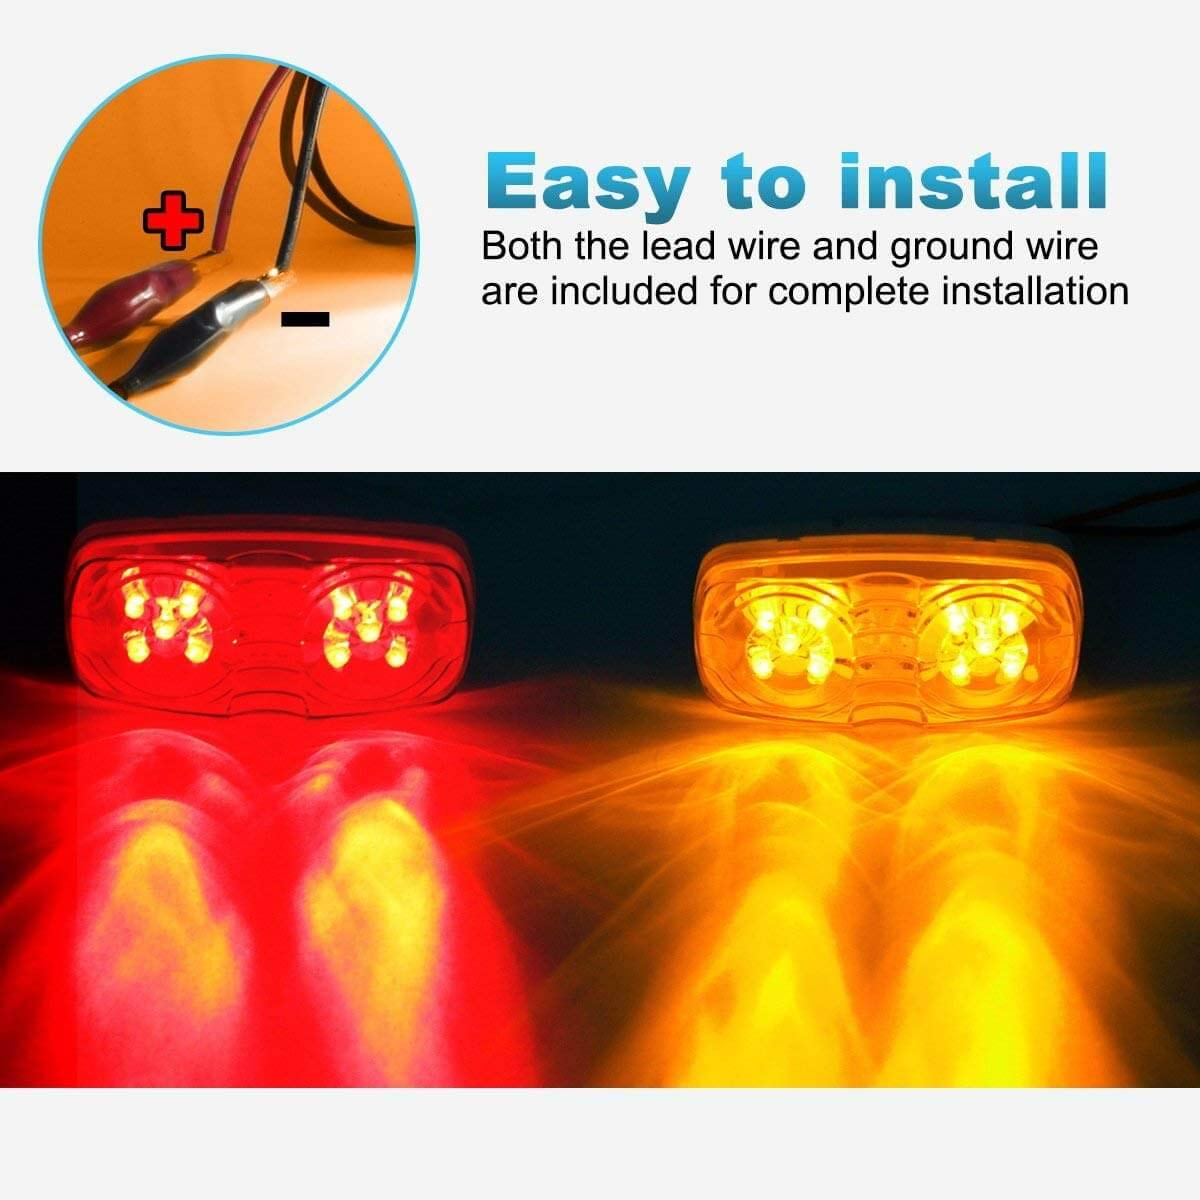 Koya 13pcs Trailer Marker Led Light Double Bullseye Clearance Side With Reflector 2 Wire Amber Red 10led Automotive